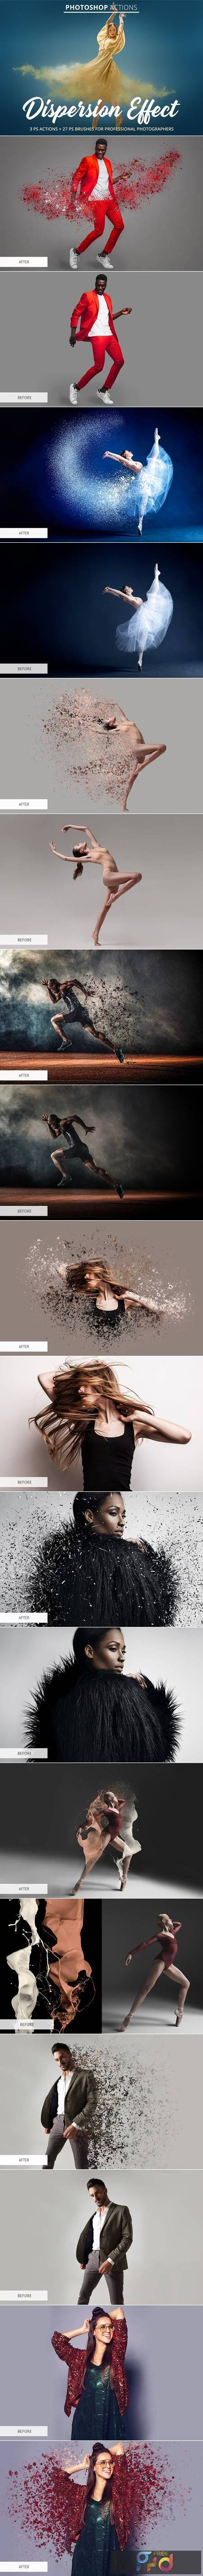 Dispersion Effect Actions for Ps 4845835 1